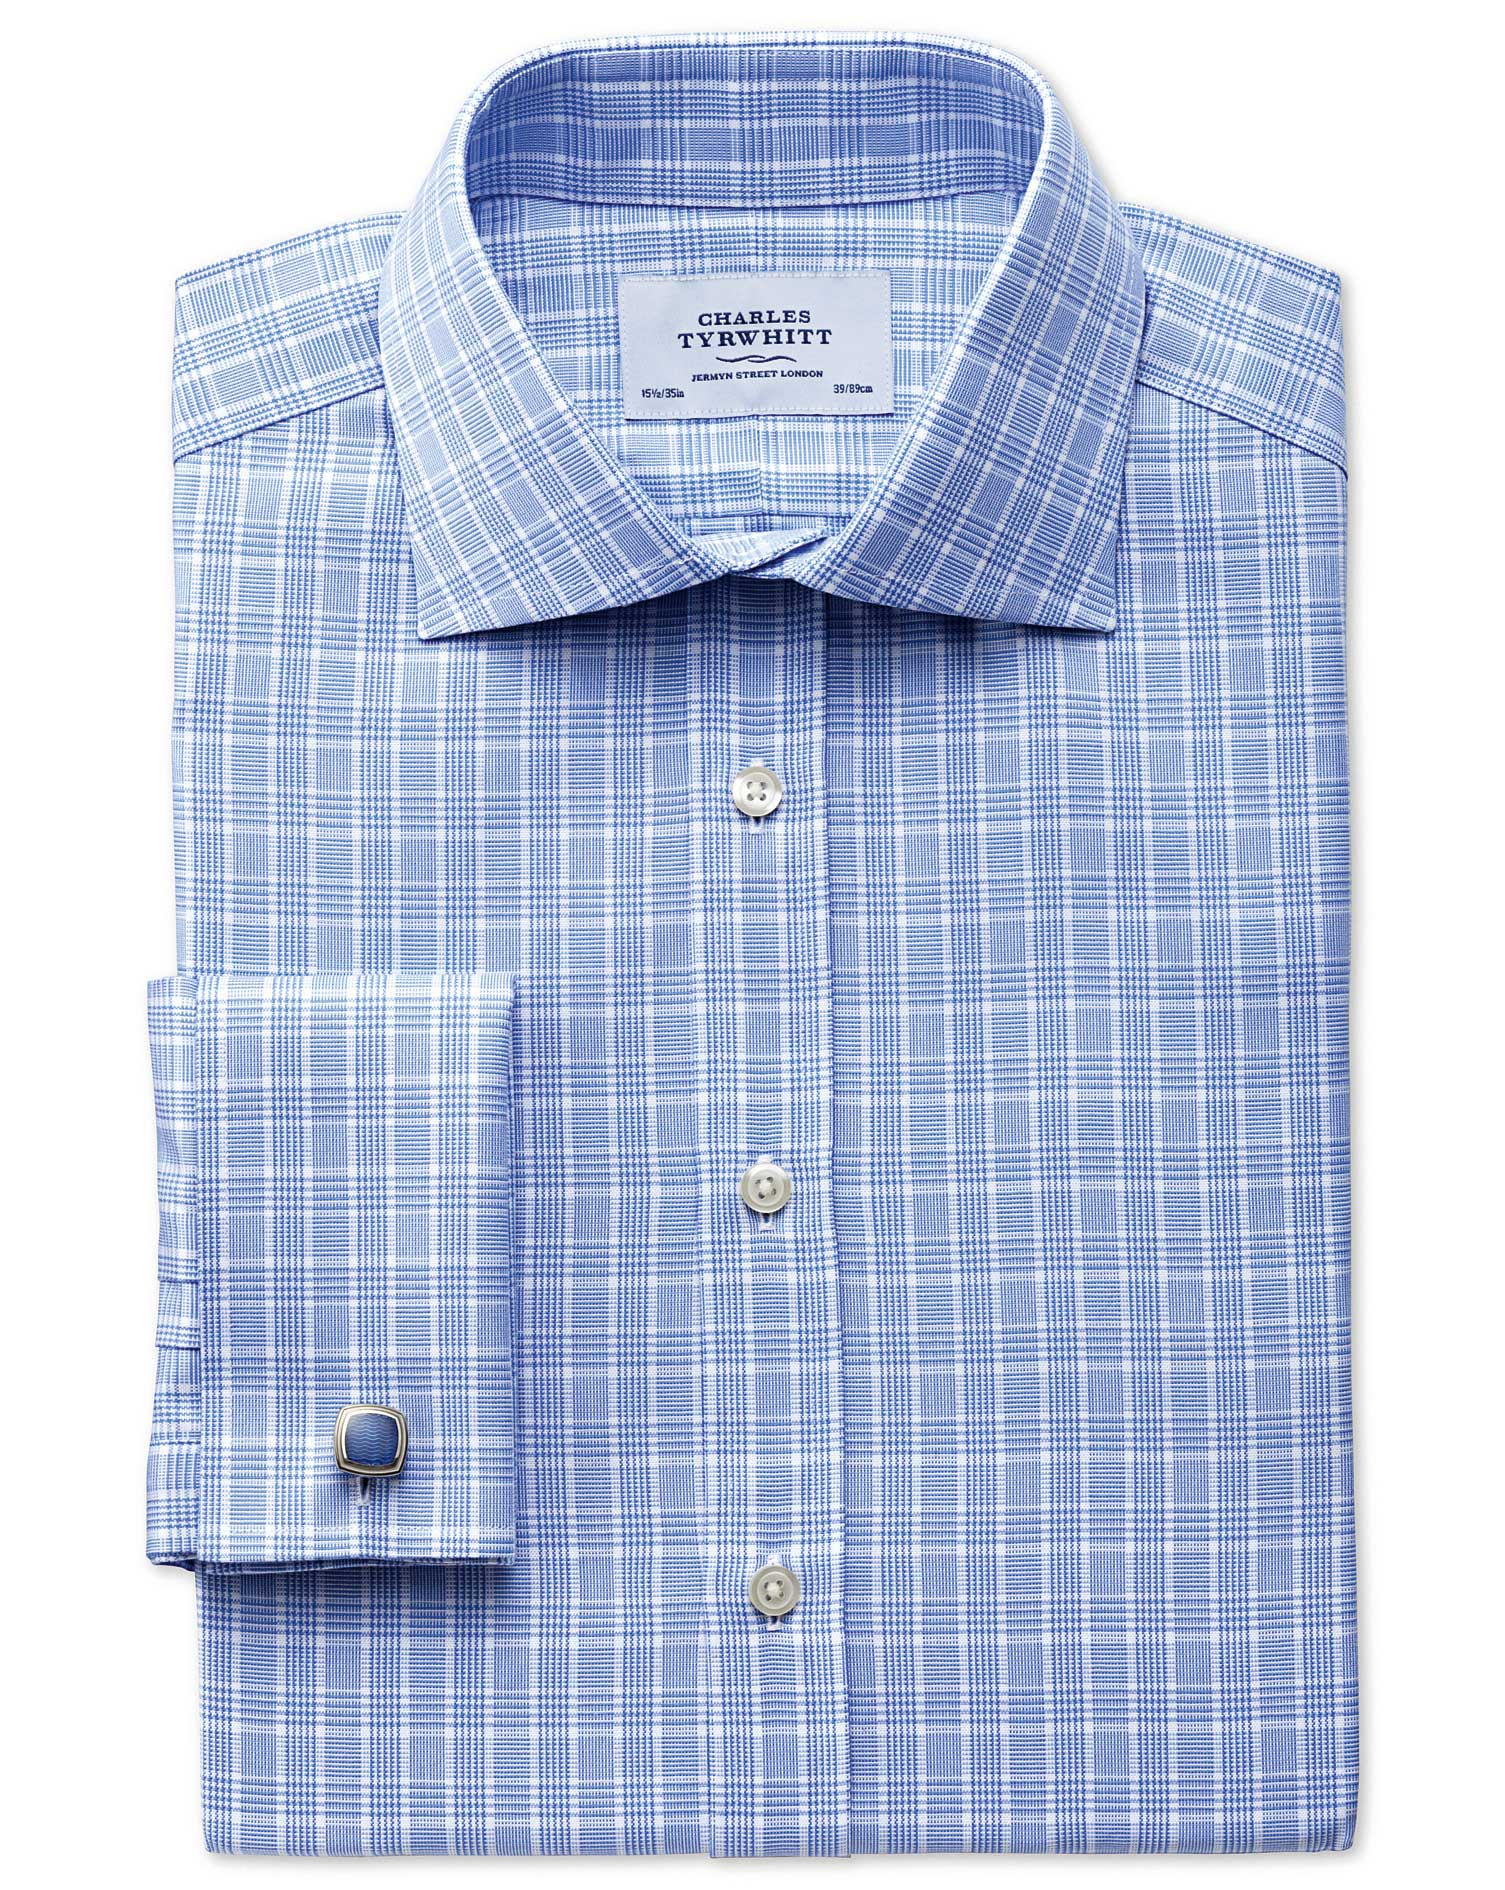 Classic Fit Prince Of Wales Basketweave Sky Blue Cotton Formal Shirt Double Cuff Size 16.5/38 by Cha